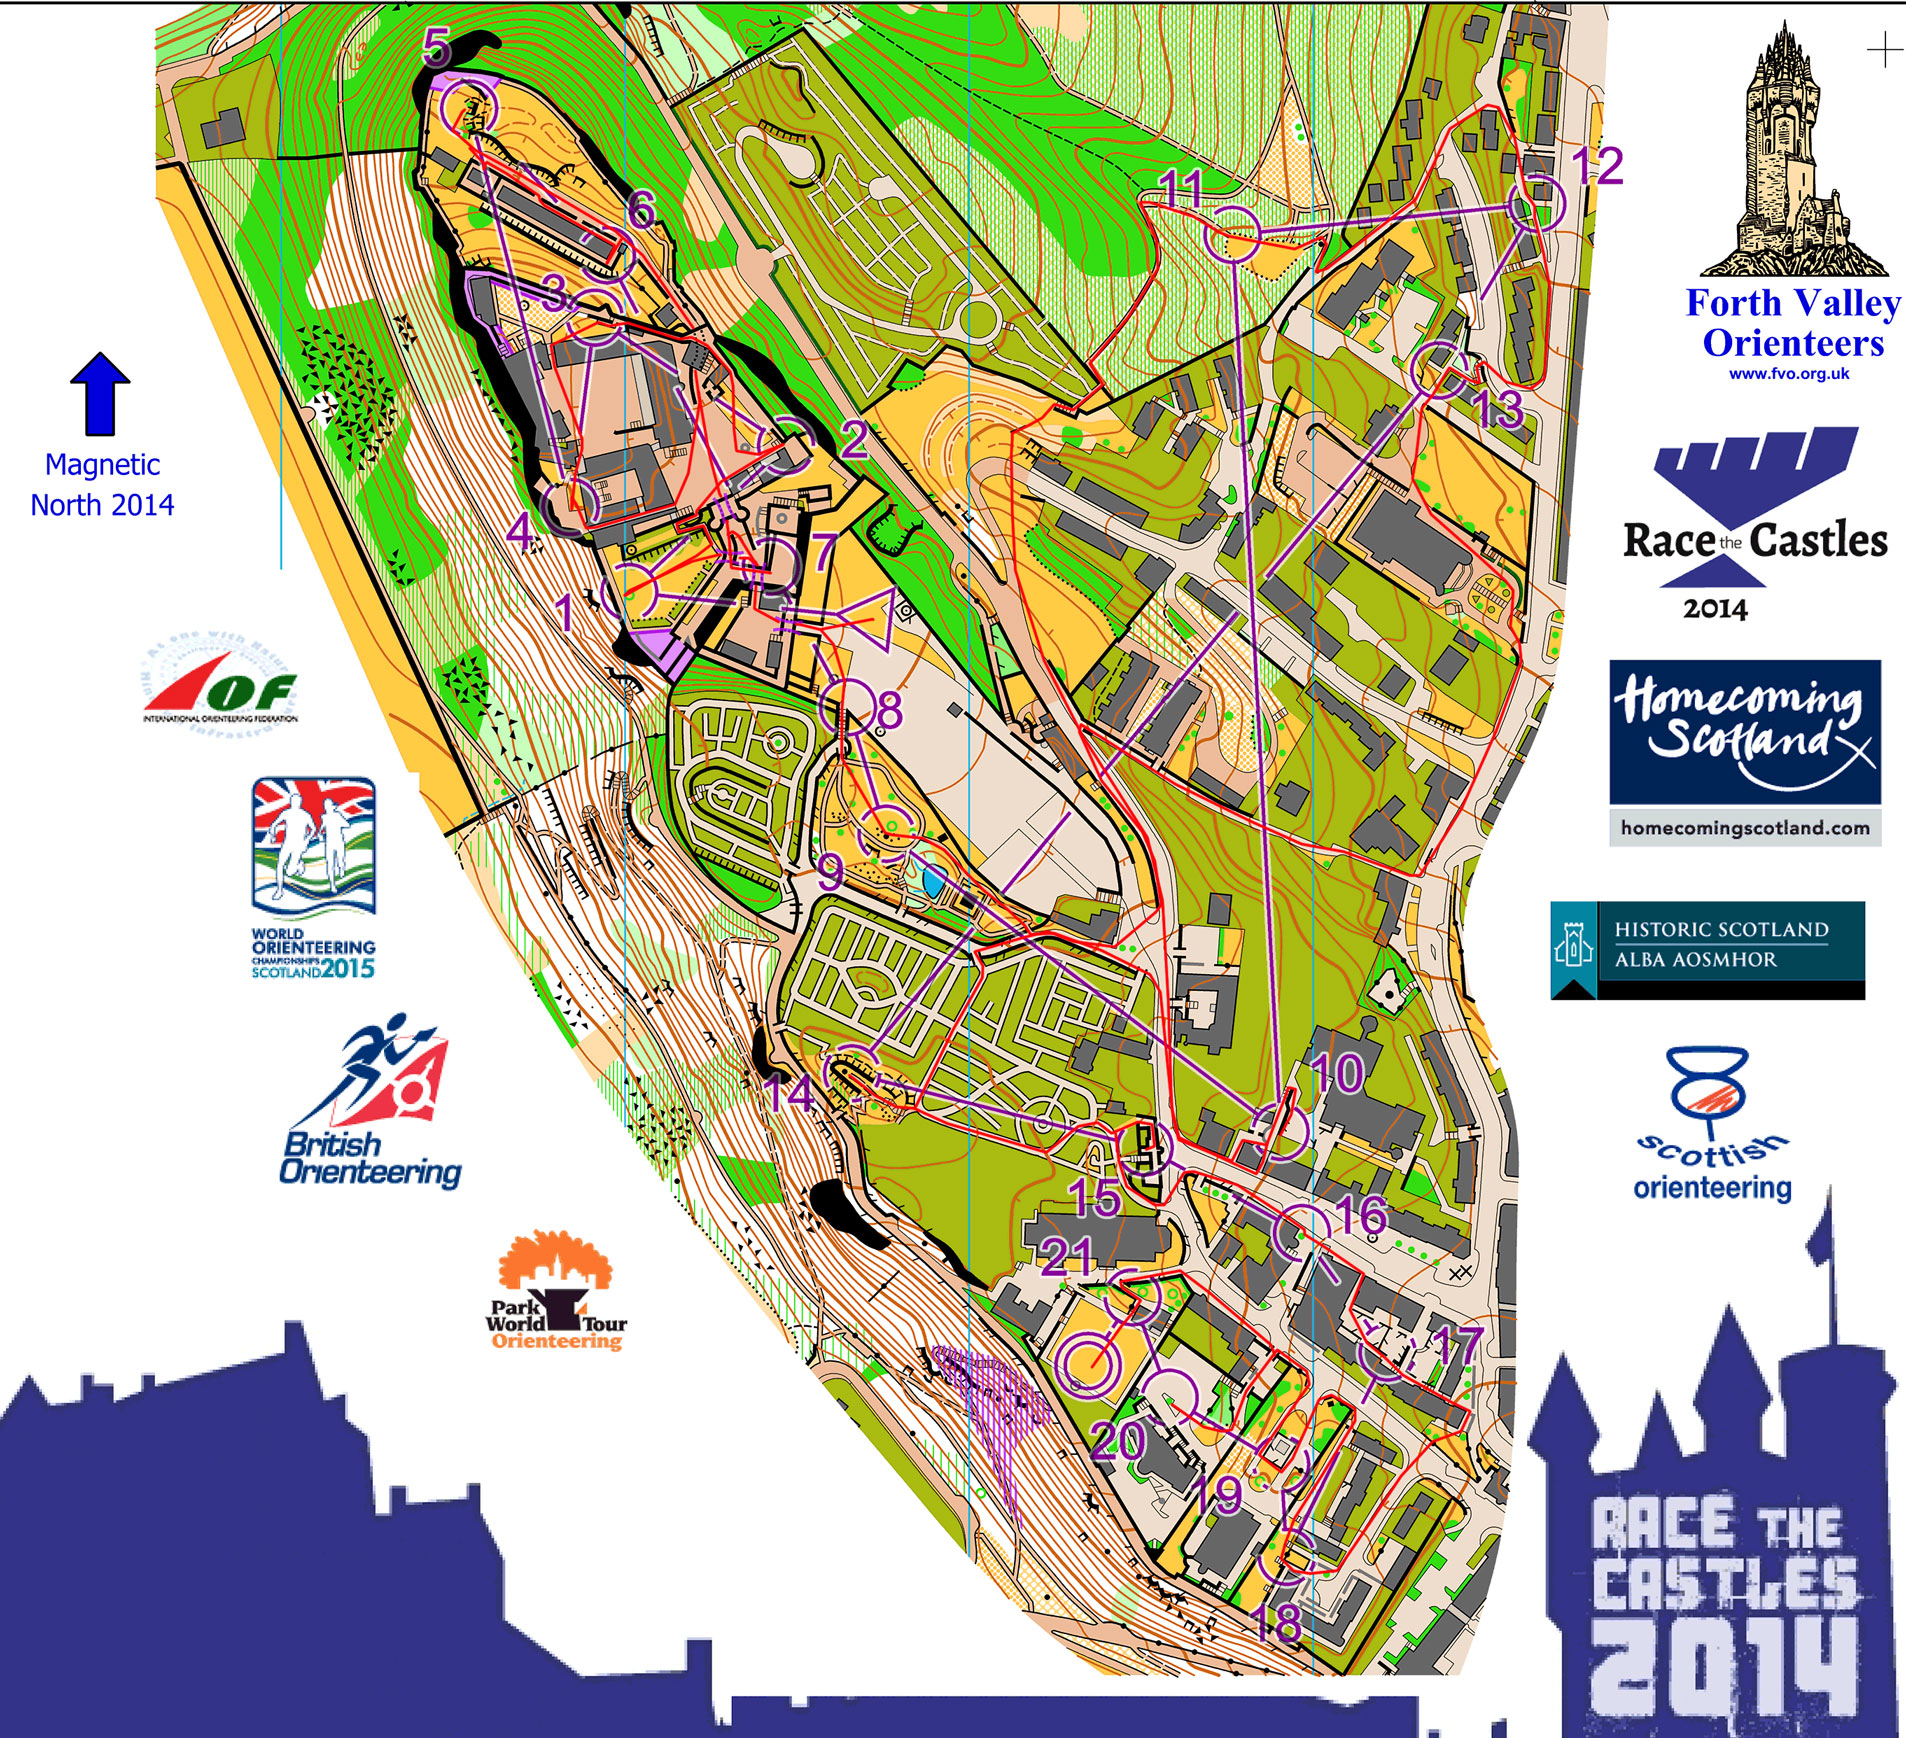 Race the Castles Stirling (12/10/2014)